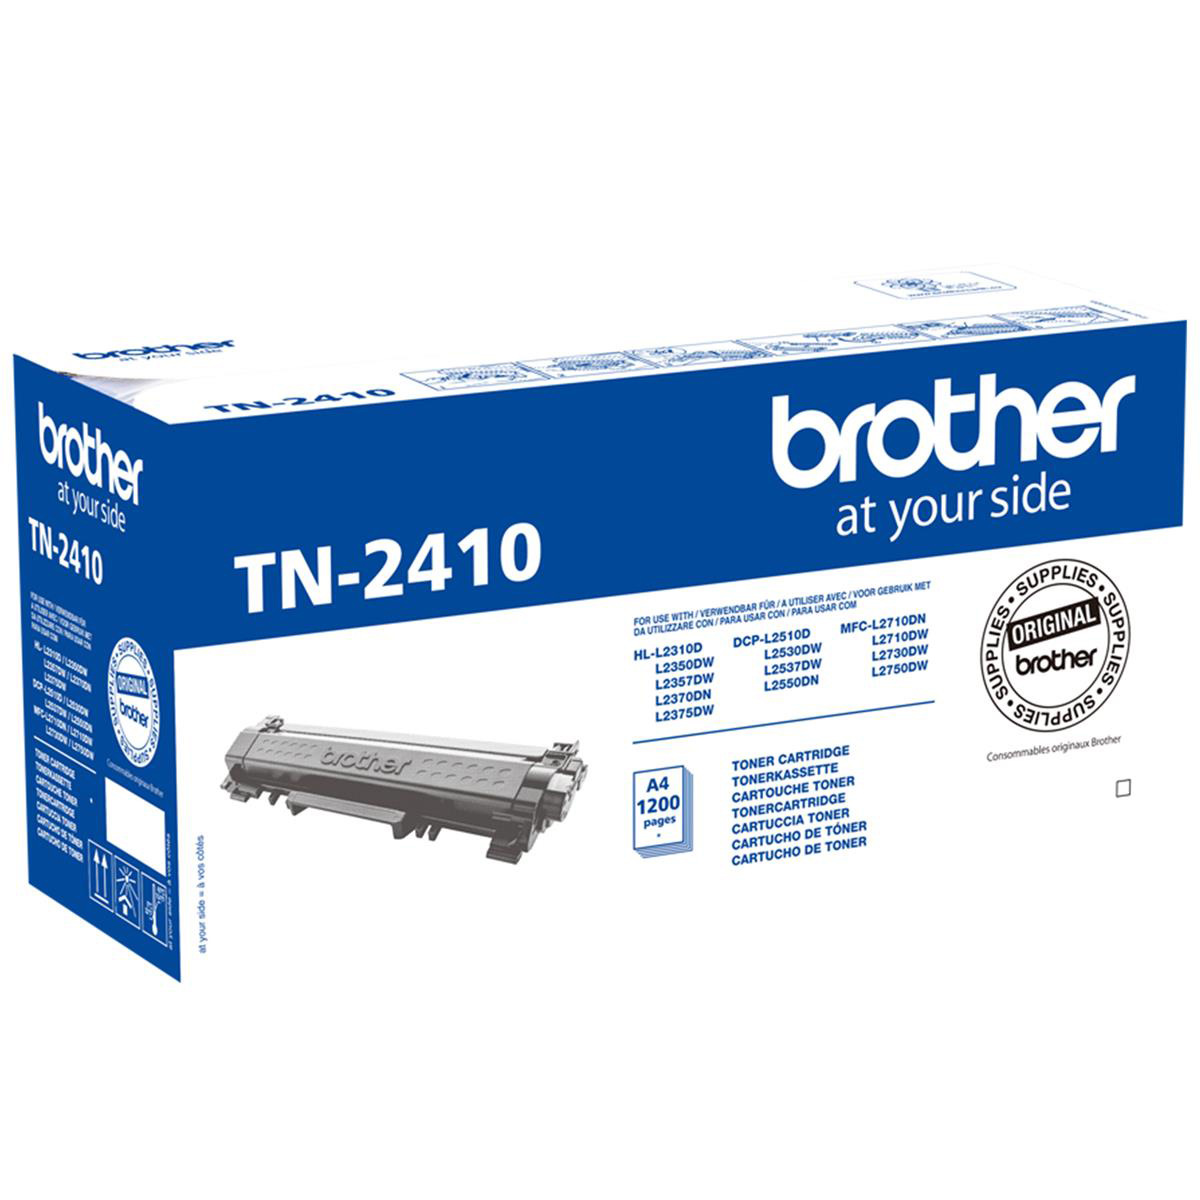 [ EX ] Brother TN-2410 Black Toner Cartridge TN2410 (1200 Pages)